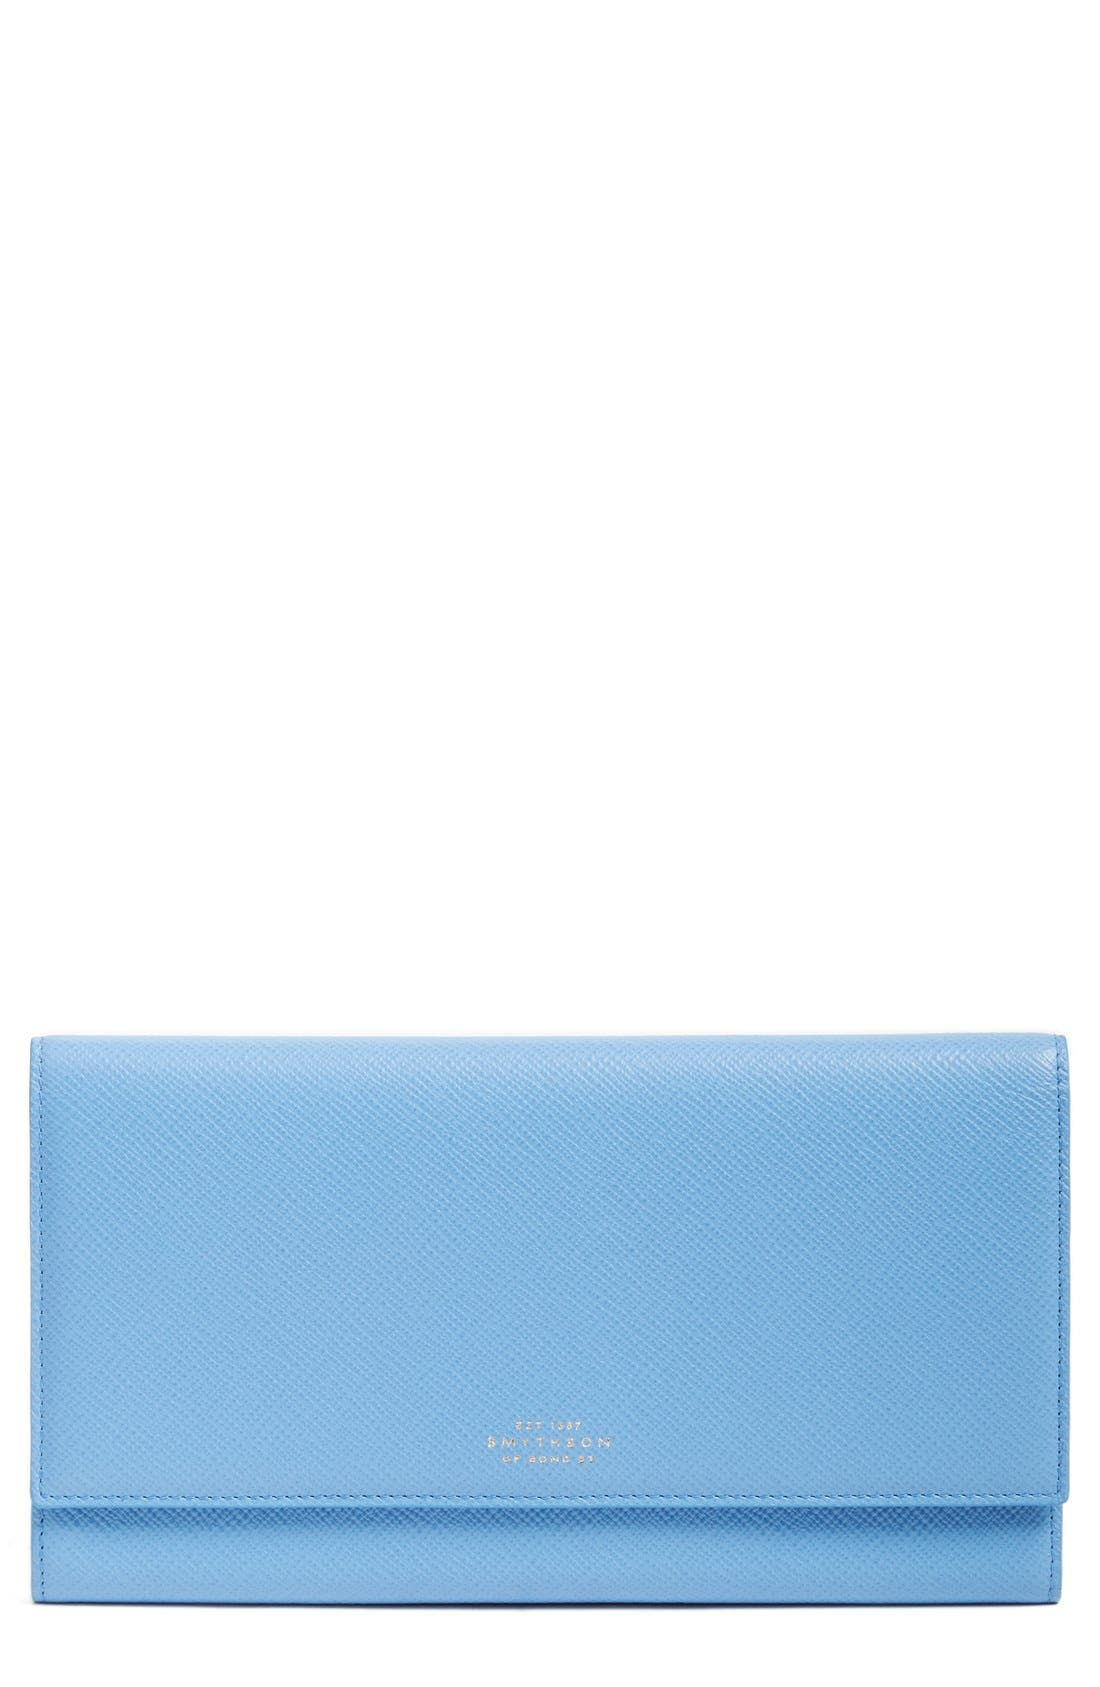 'Panama Marshall' Travel Wallet,                         Main,                         color, Nile Blue